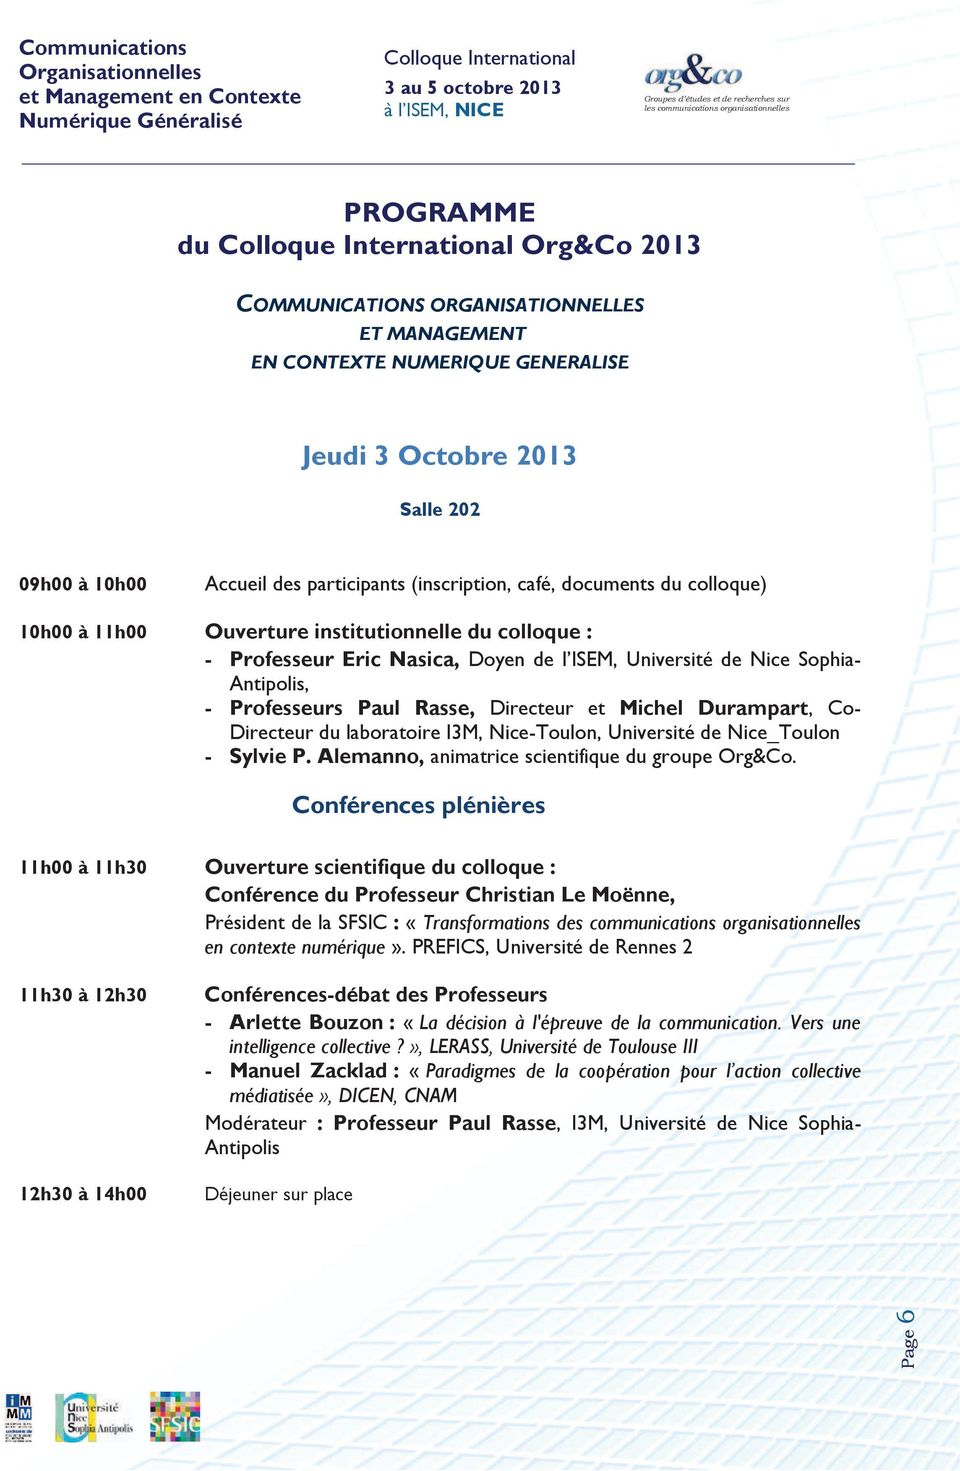 Accueil des participants (inscription, café, documents du colloque) 10h00 à 11h00 Ouverture institutionnelle du colloque : - Professeur Eric Nasica, Doyen de l ISEM, Université de Nice Sophia-